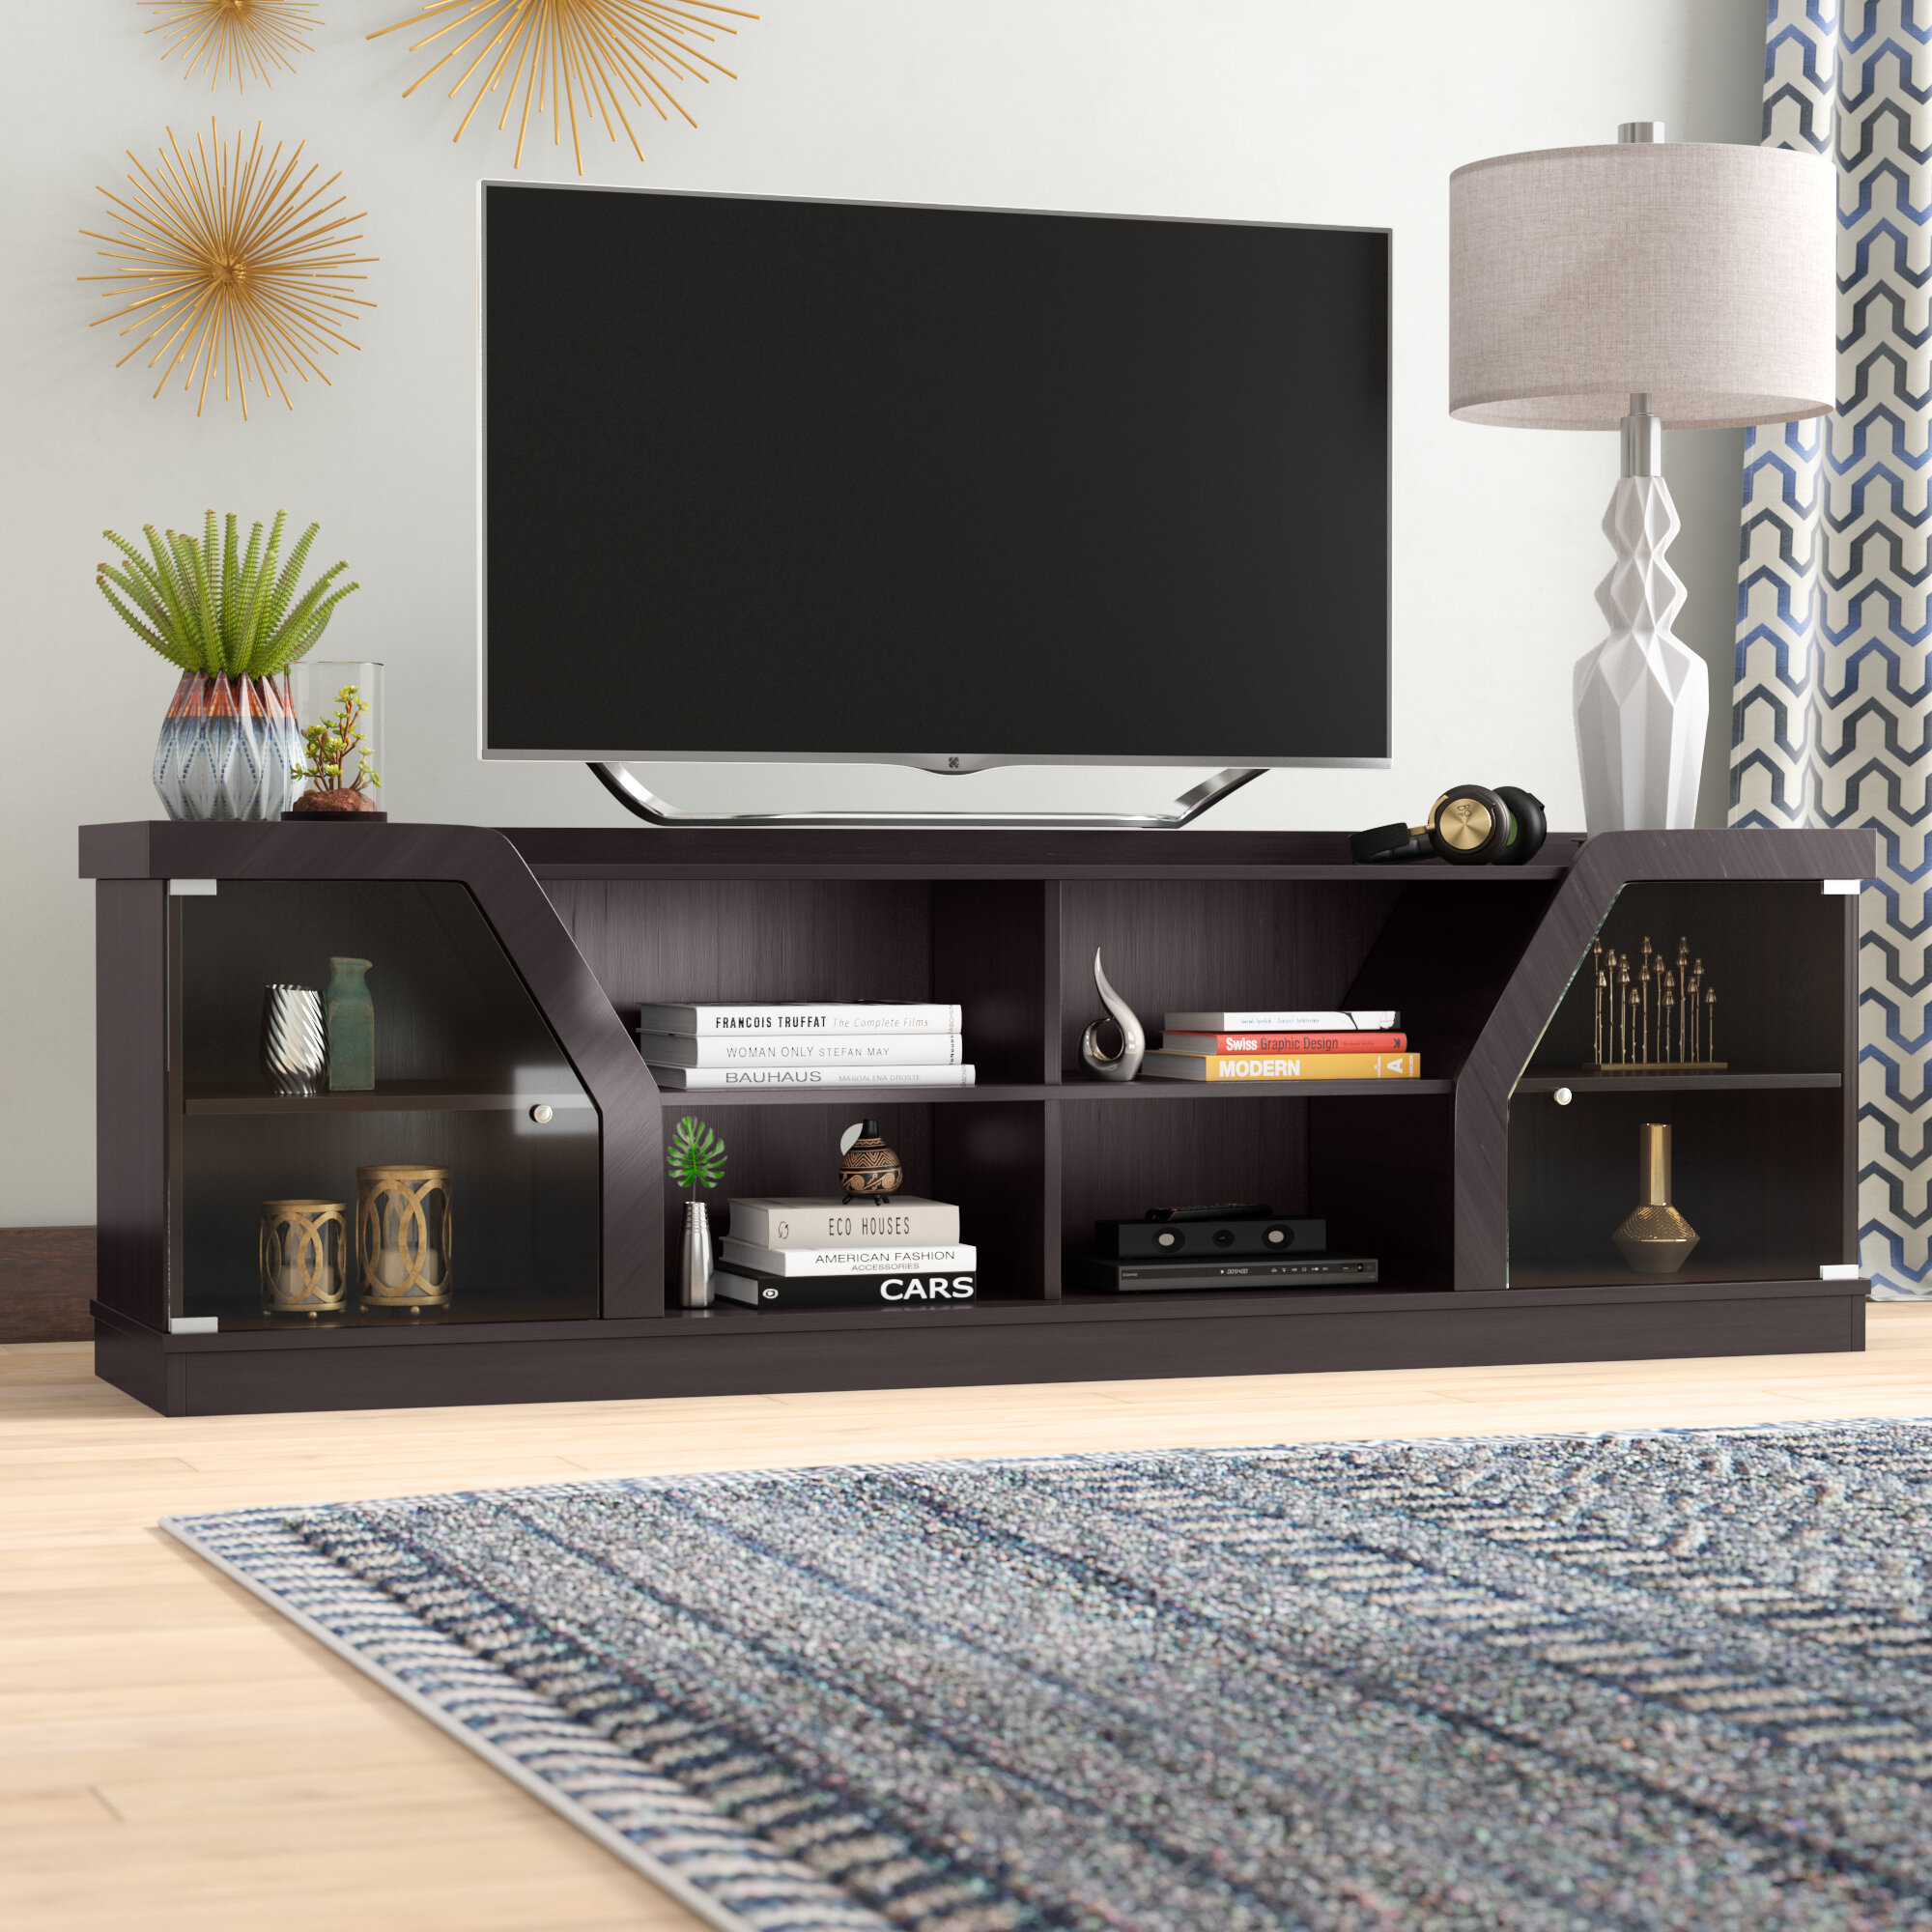 Ebern Designs Oxfordshire Tv Stand For Tvs Up To 78 Reviews Wayfair